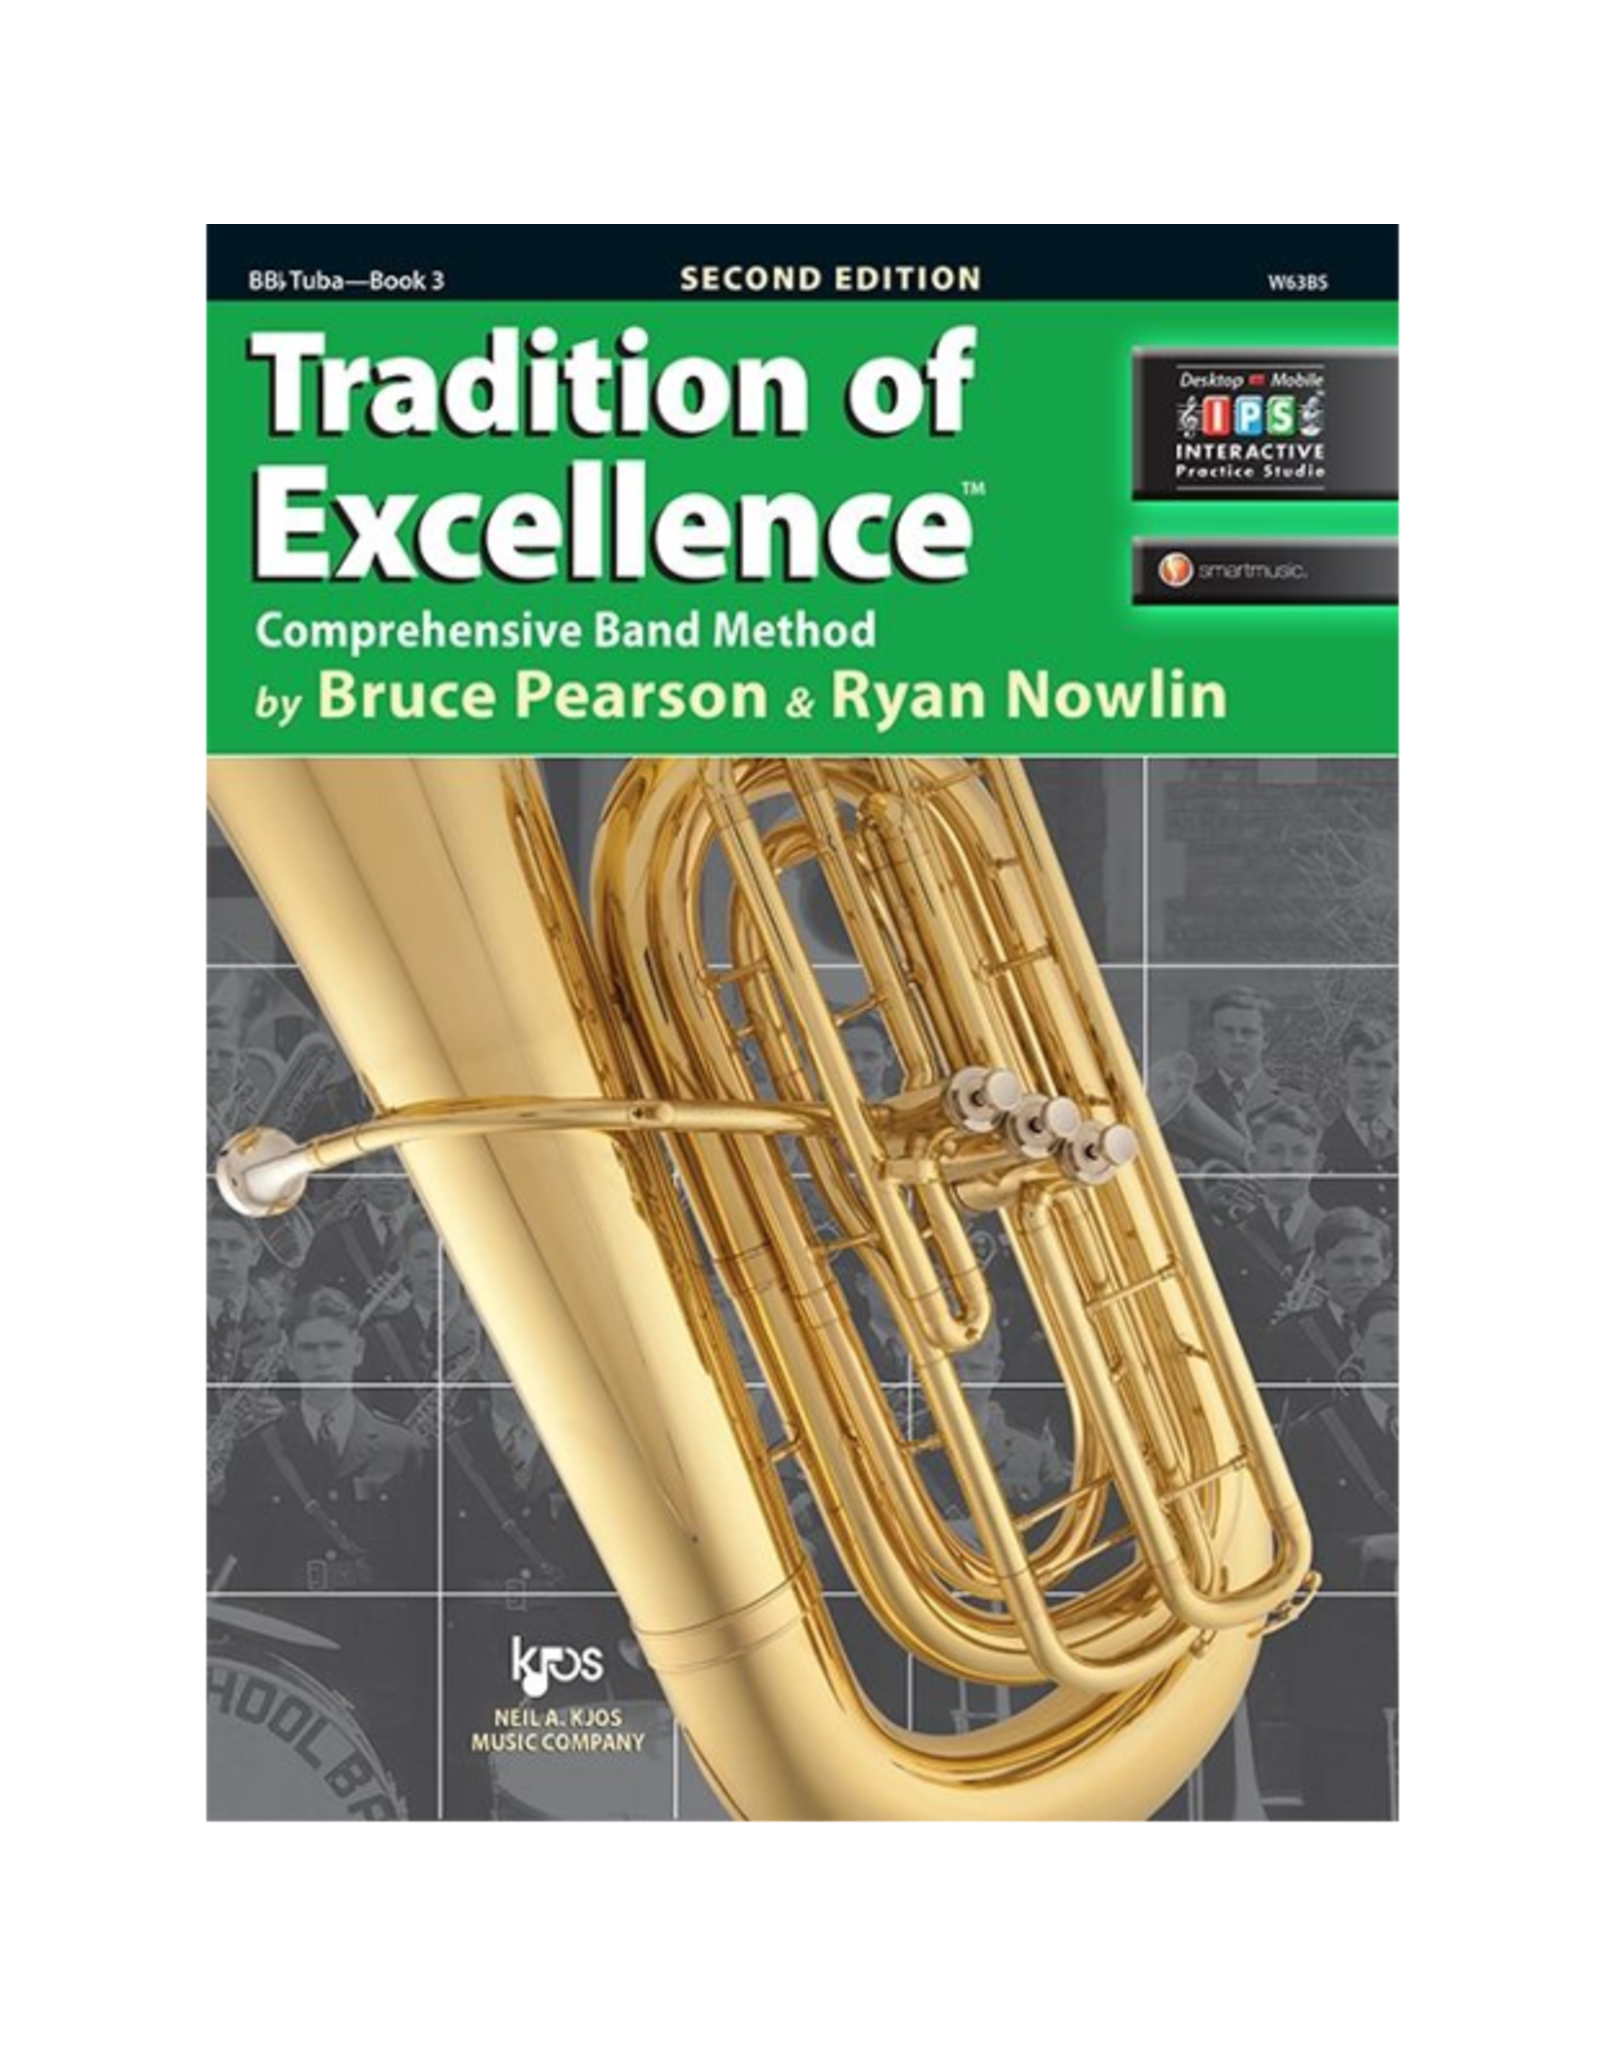 Neil A Kjos Music Company Tradition of Excellence BBb Tuba Book 3